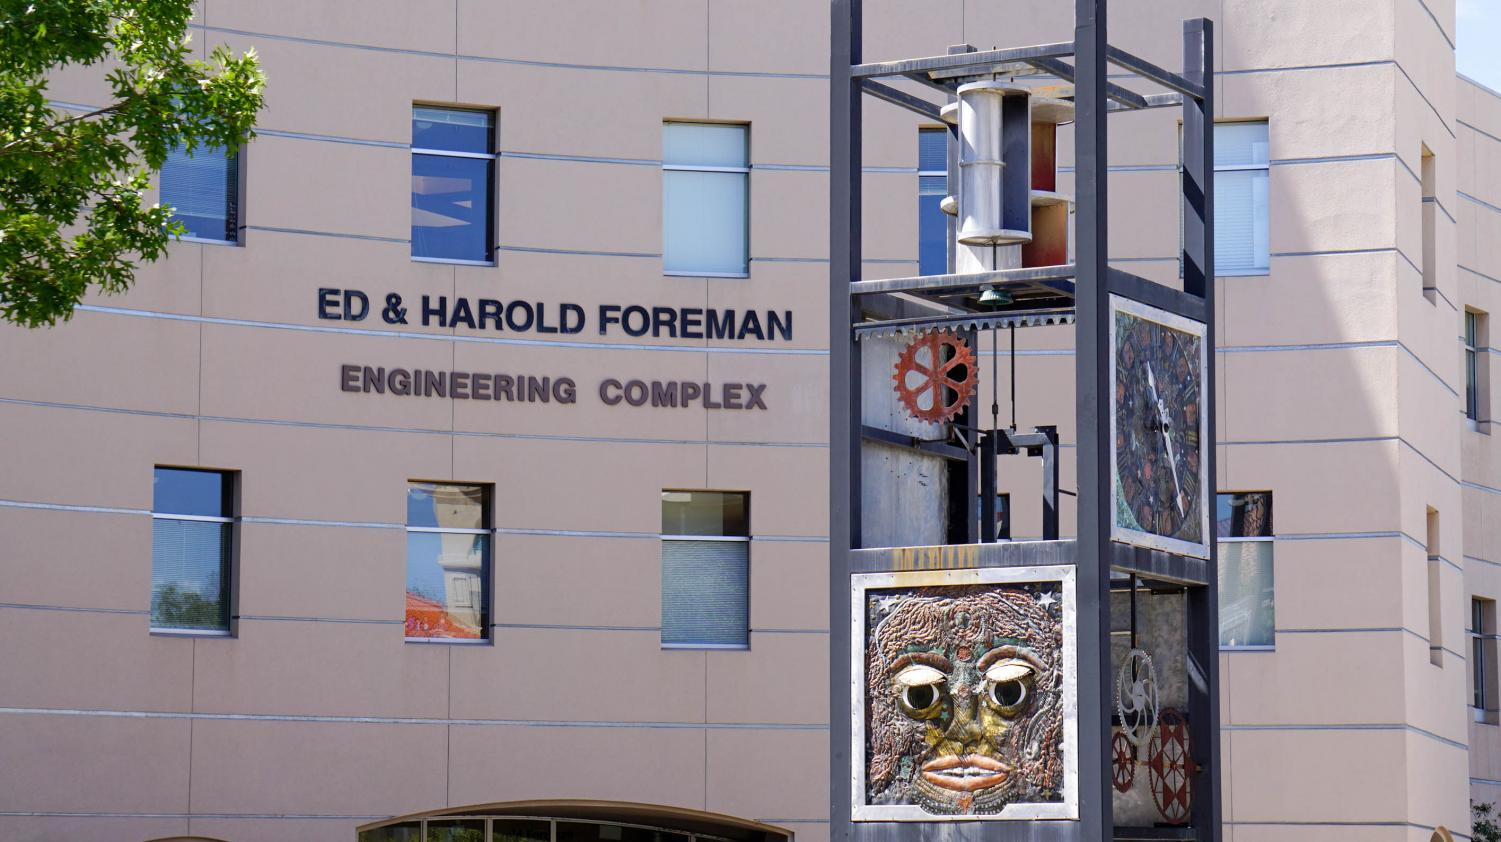 Ed and Harold Foreman Engineering Complex.